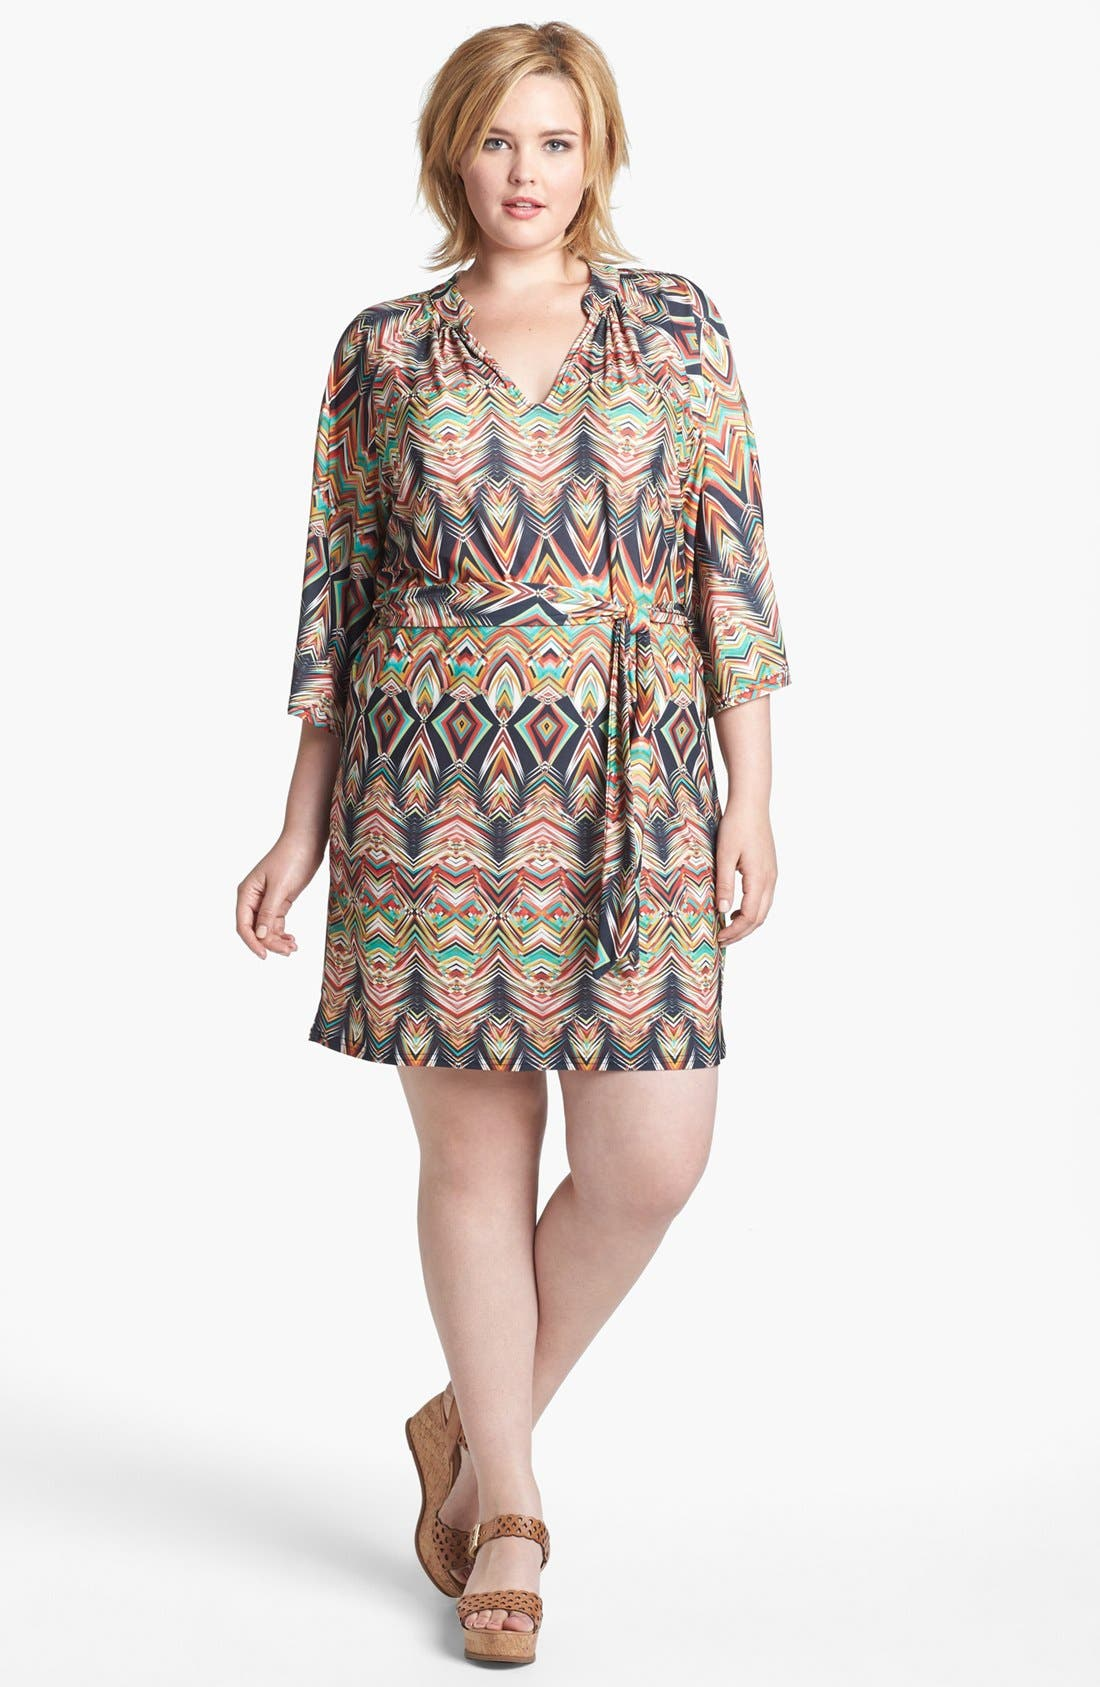 Main Image - Viereck Print Belted Tunic Dress (Plus Size)